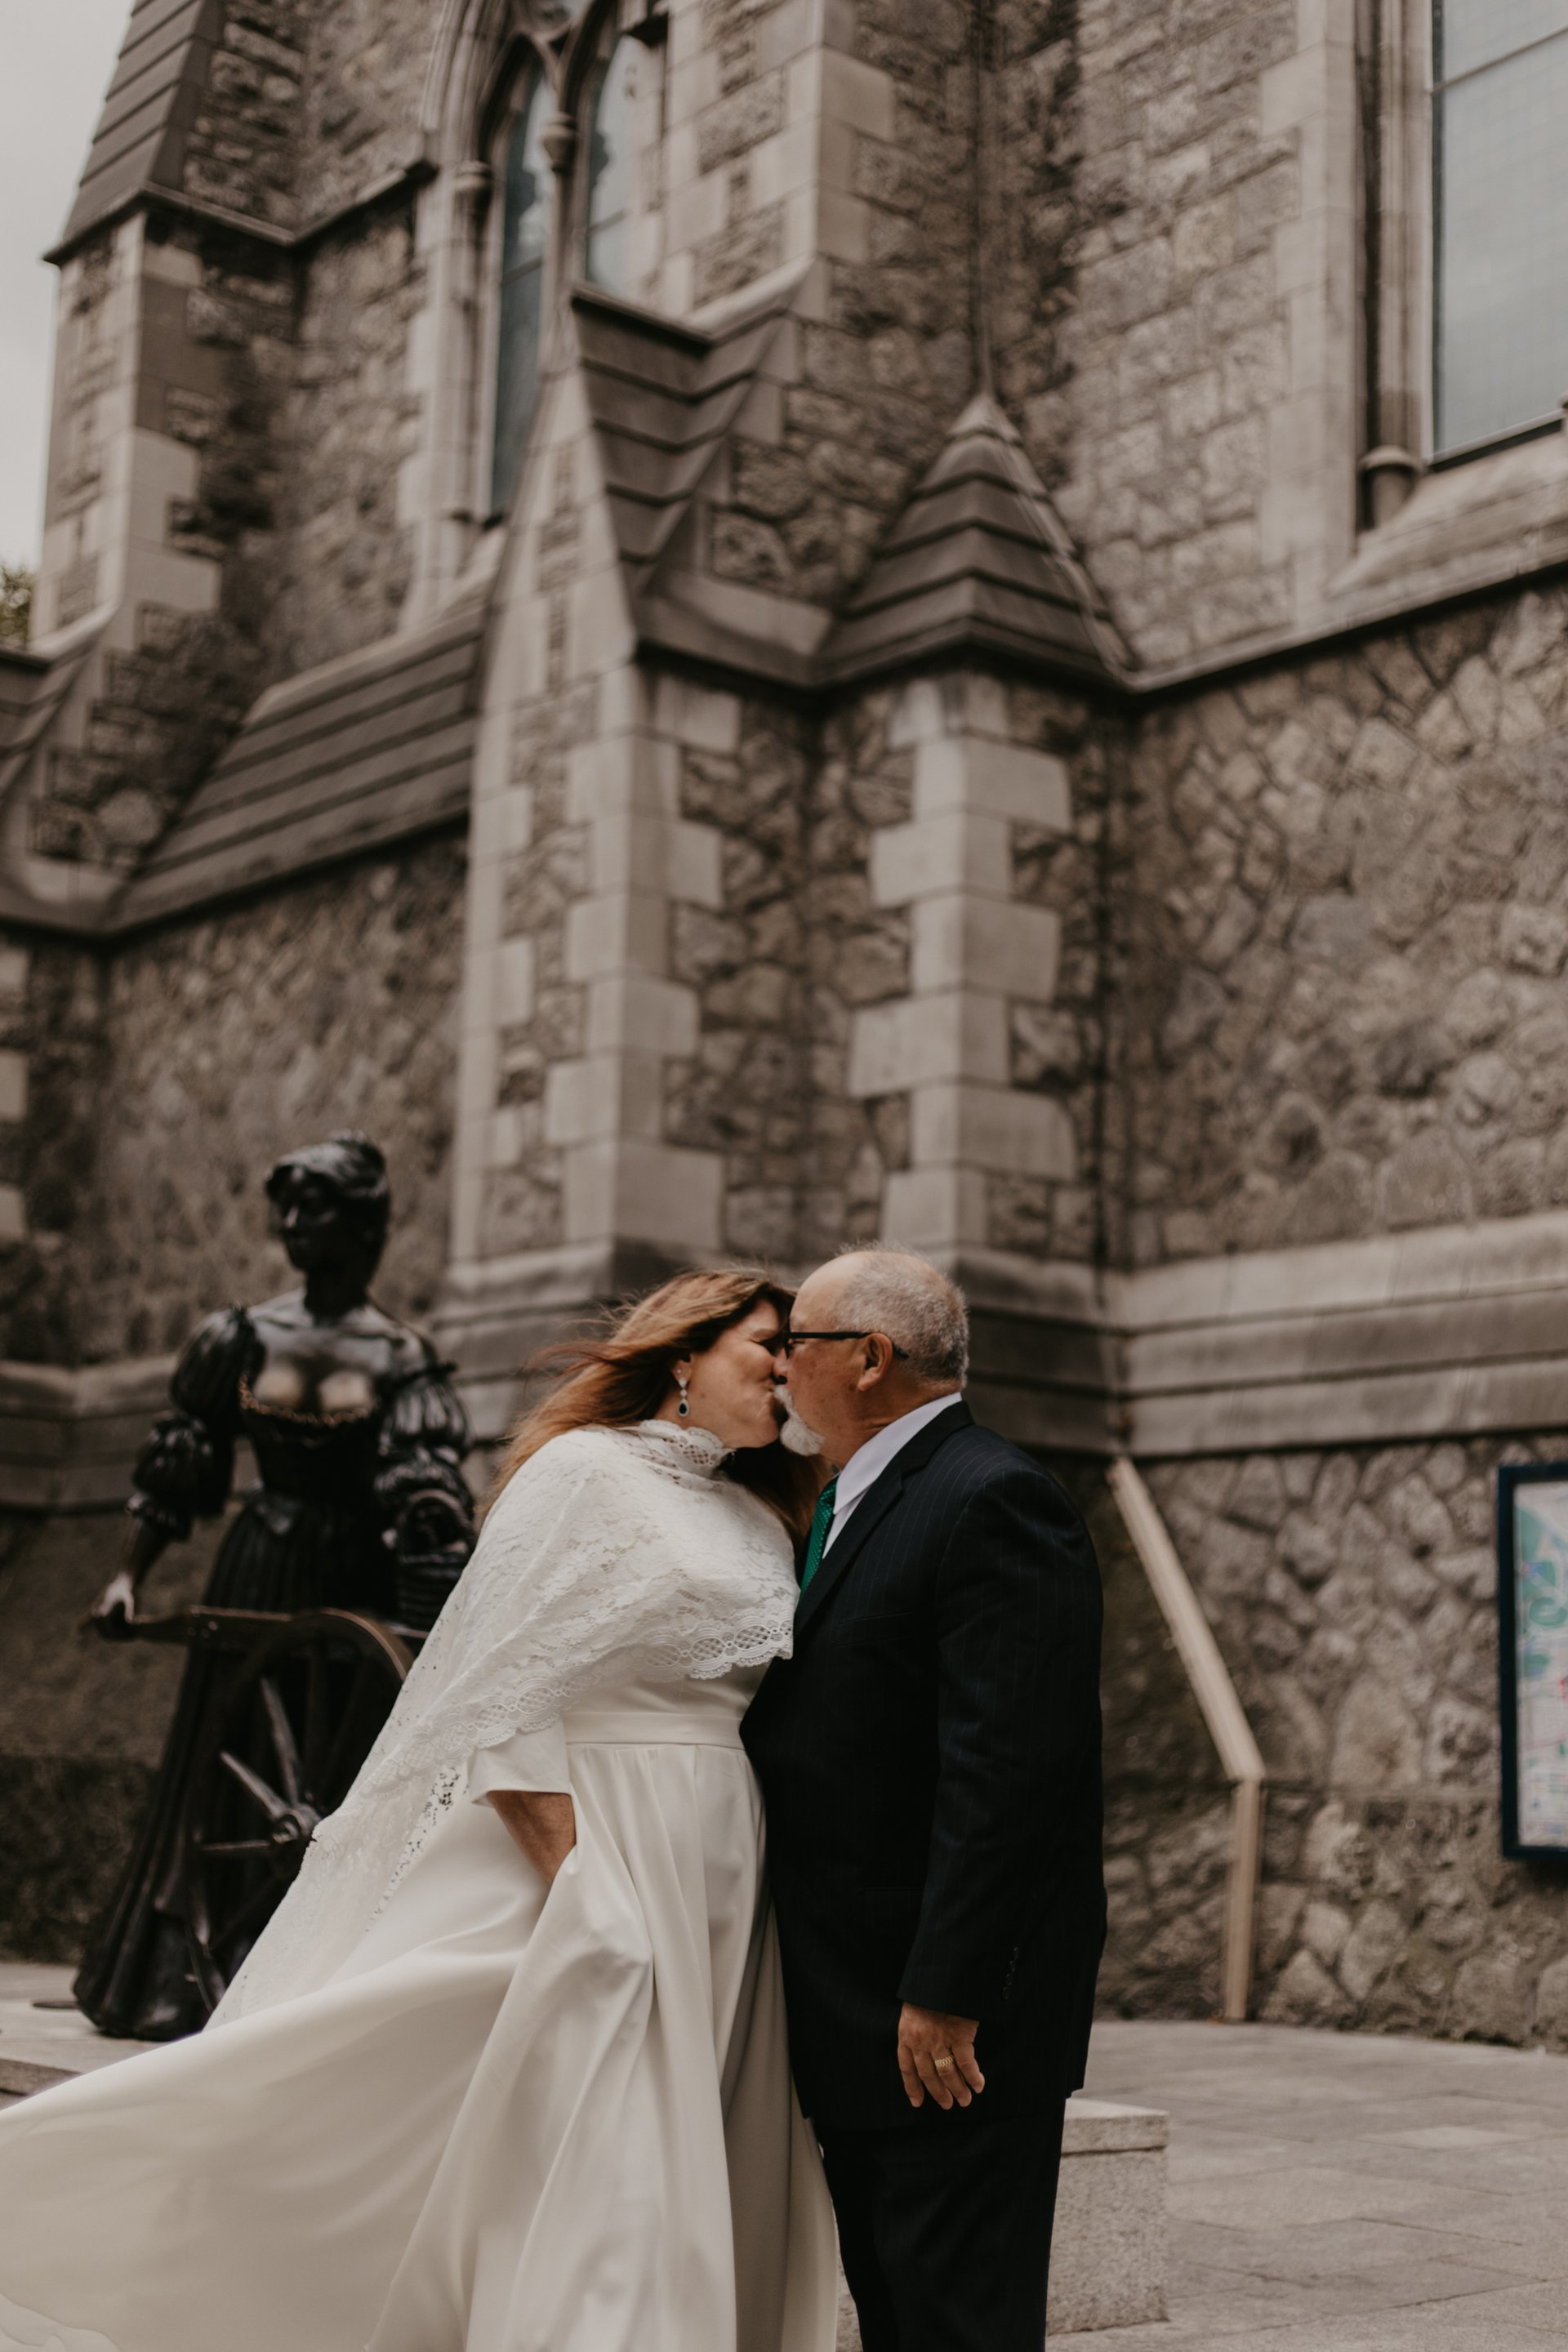 Flytographer Travel Story - Our Ireland 2021 trip